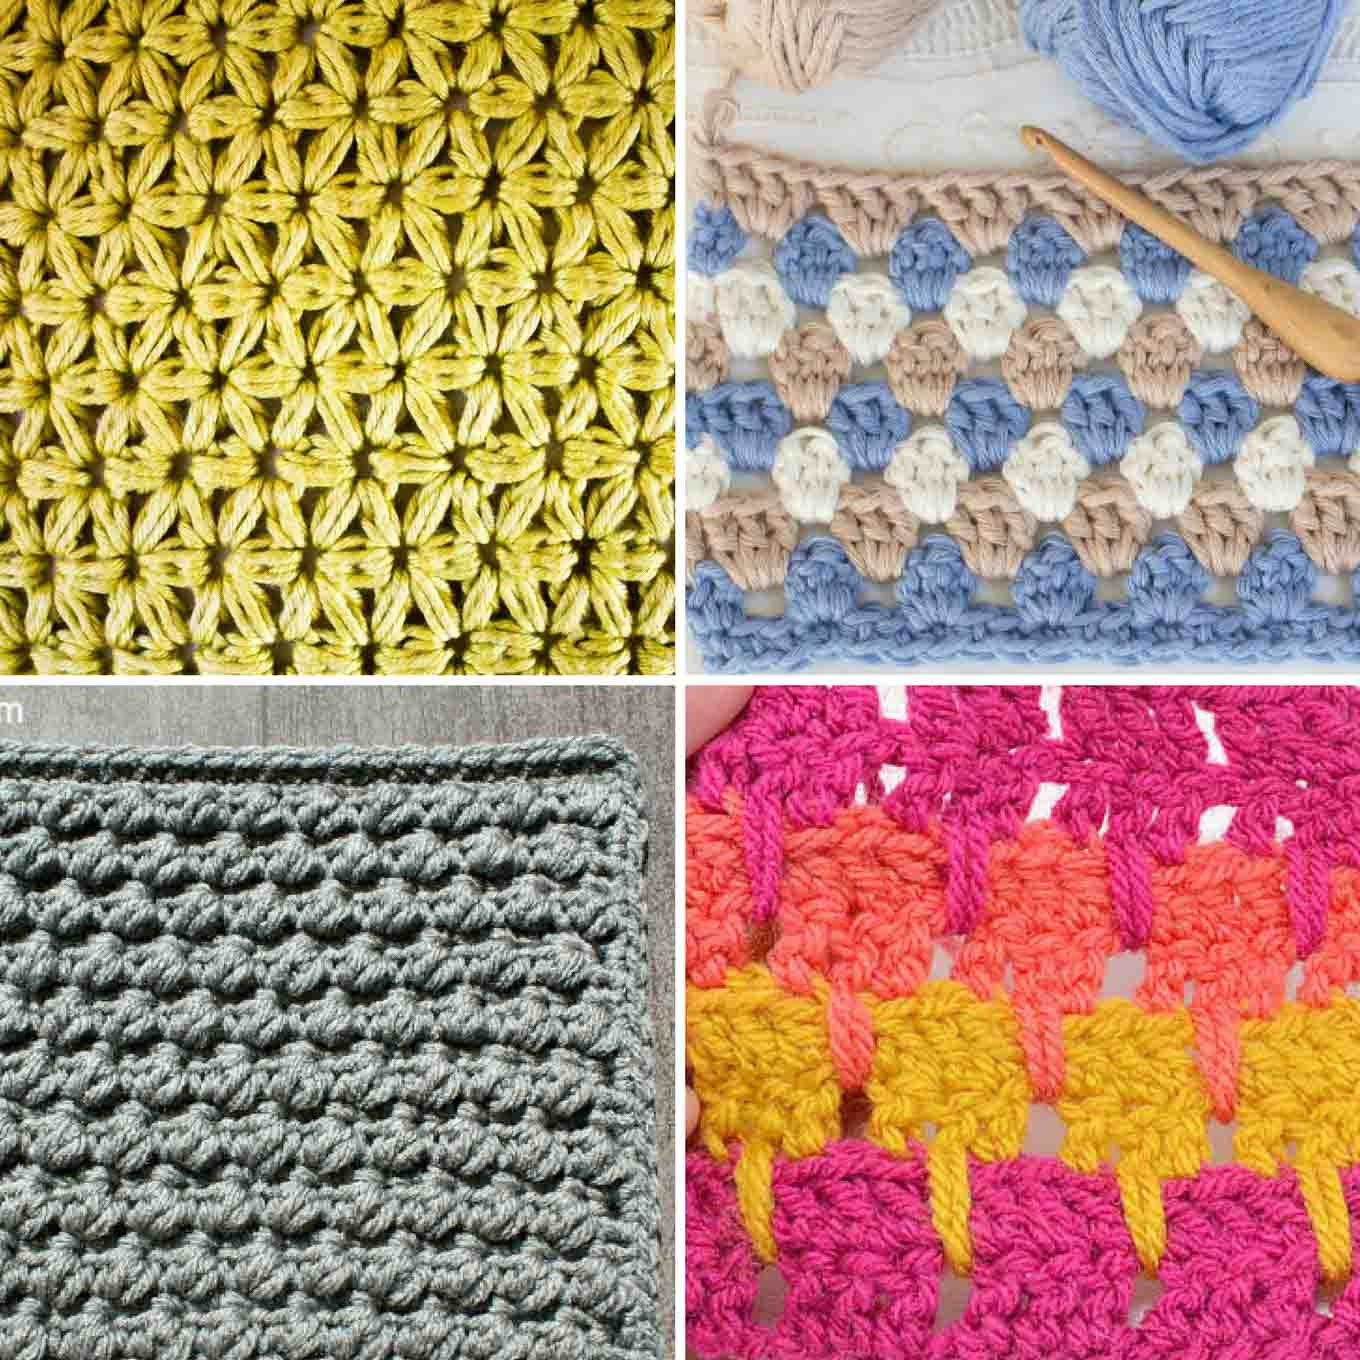 Best Of 25 Crochet Stitches for Blankets and Afghans Make & Do Crew Crochet Stitches with Pictures Of Marvelous 46 Photos Crochet Stitches with Pictures